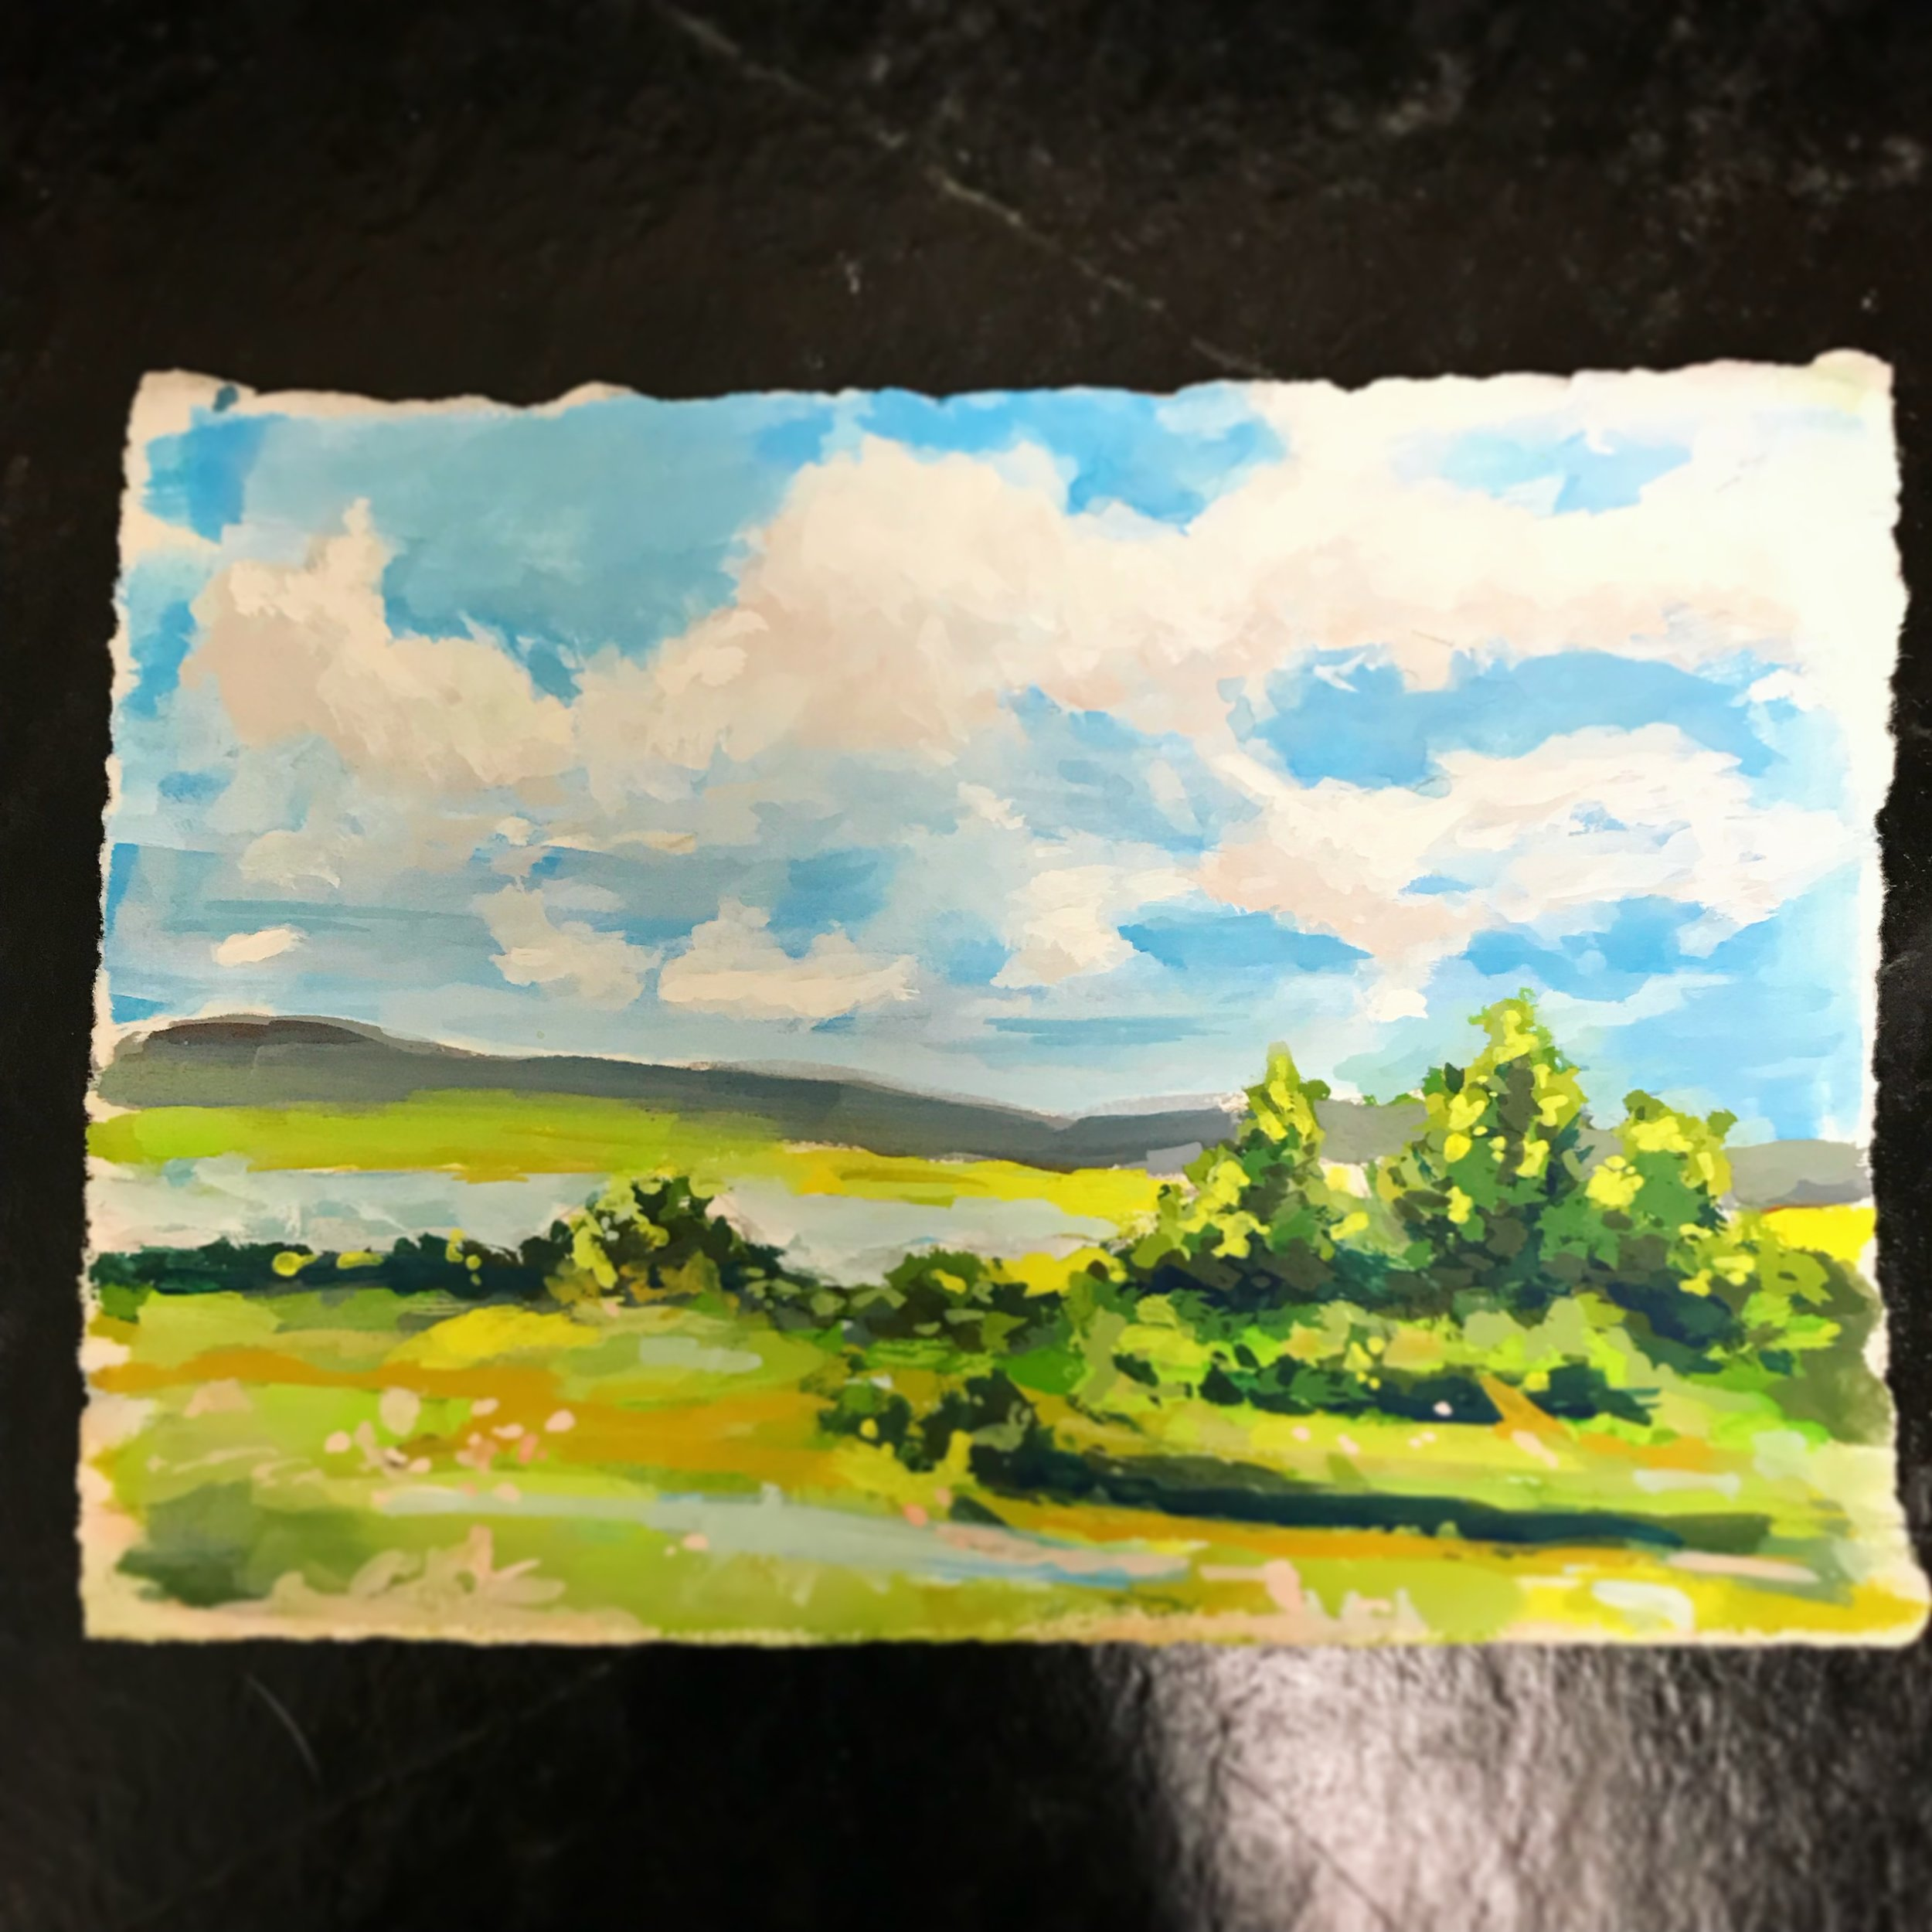 My second painting, working on technique